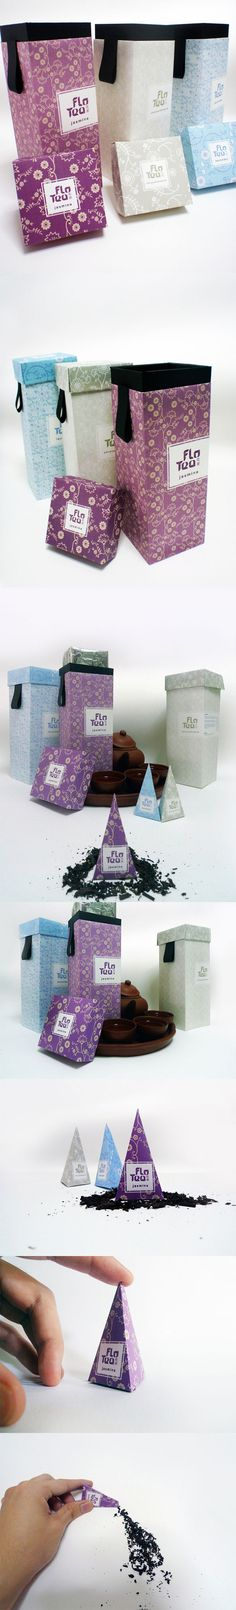 Unique Packaging Design, Flo Tea #packaging #design (http://www.pinterest.com/aldenchong/)